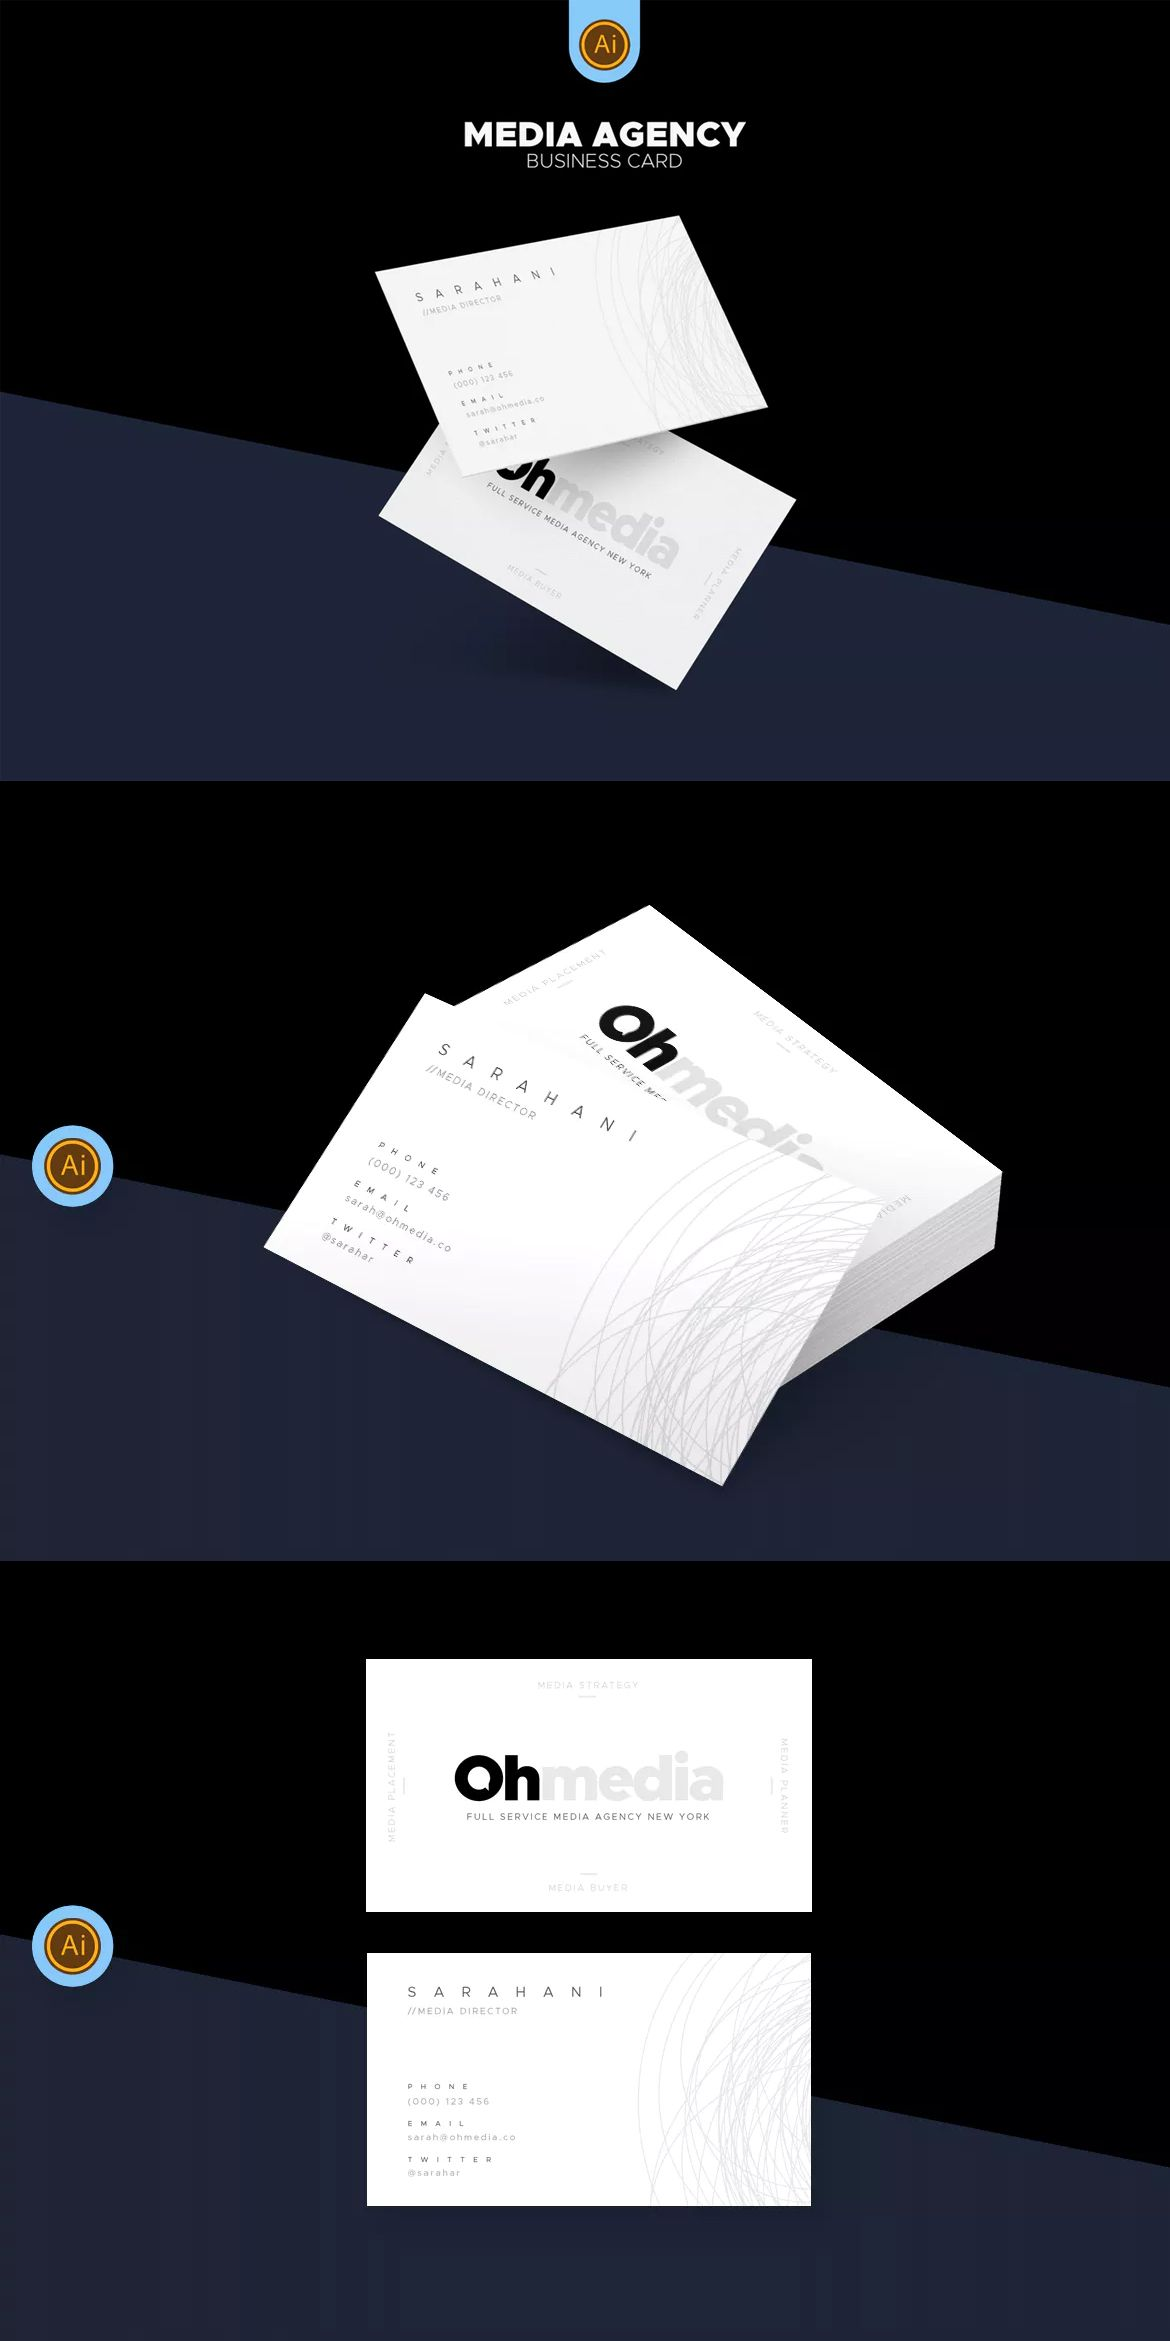 Media agency business card ai eps unlimiteddownloads business media agency business card ai eps unlimiteddownloads flashek Gallery